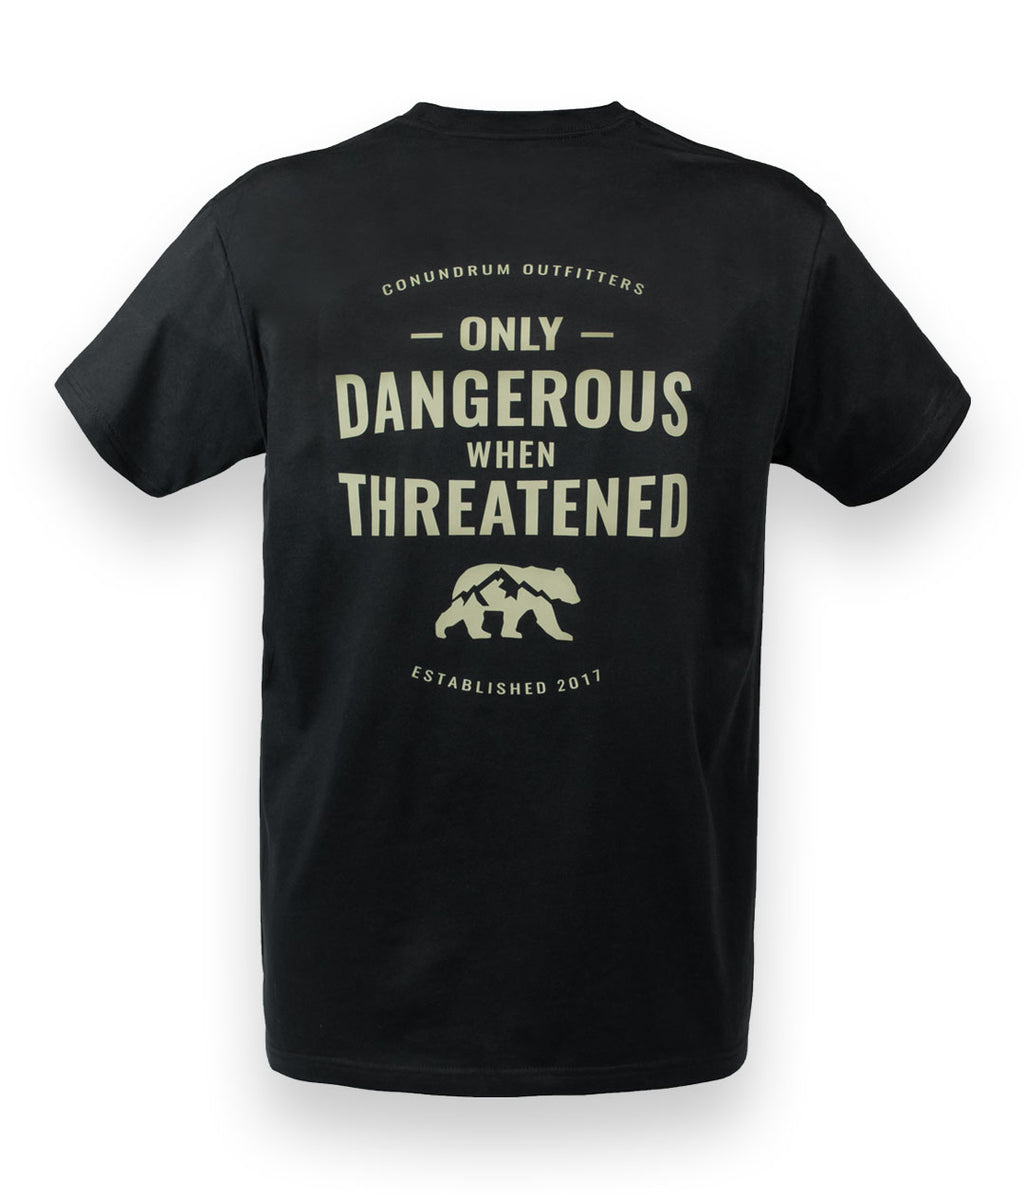 Only Dangerous When Threatened Short Sleeve Black Shirt